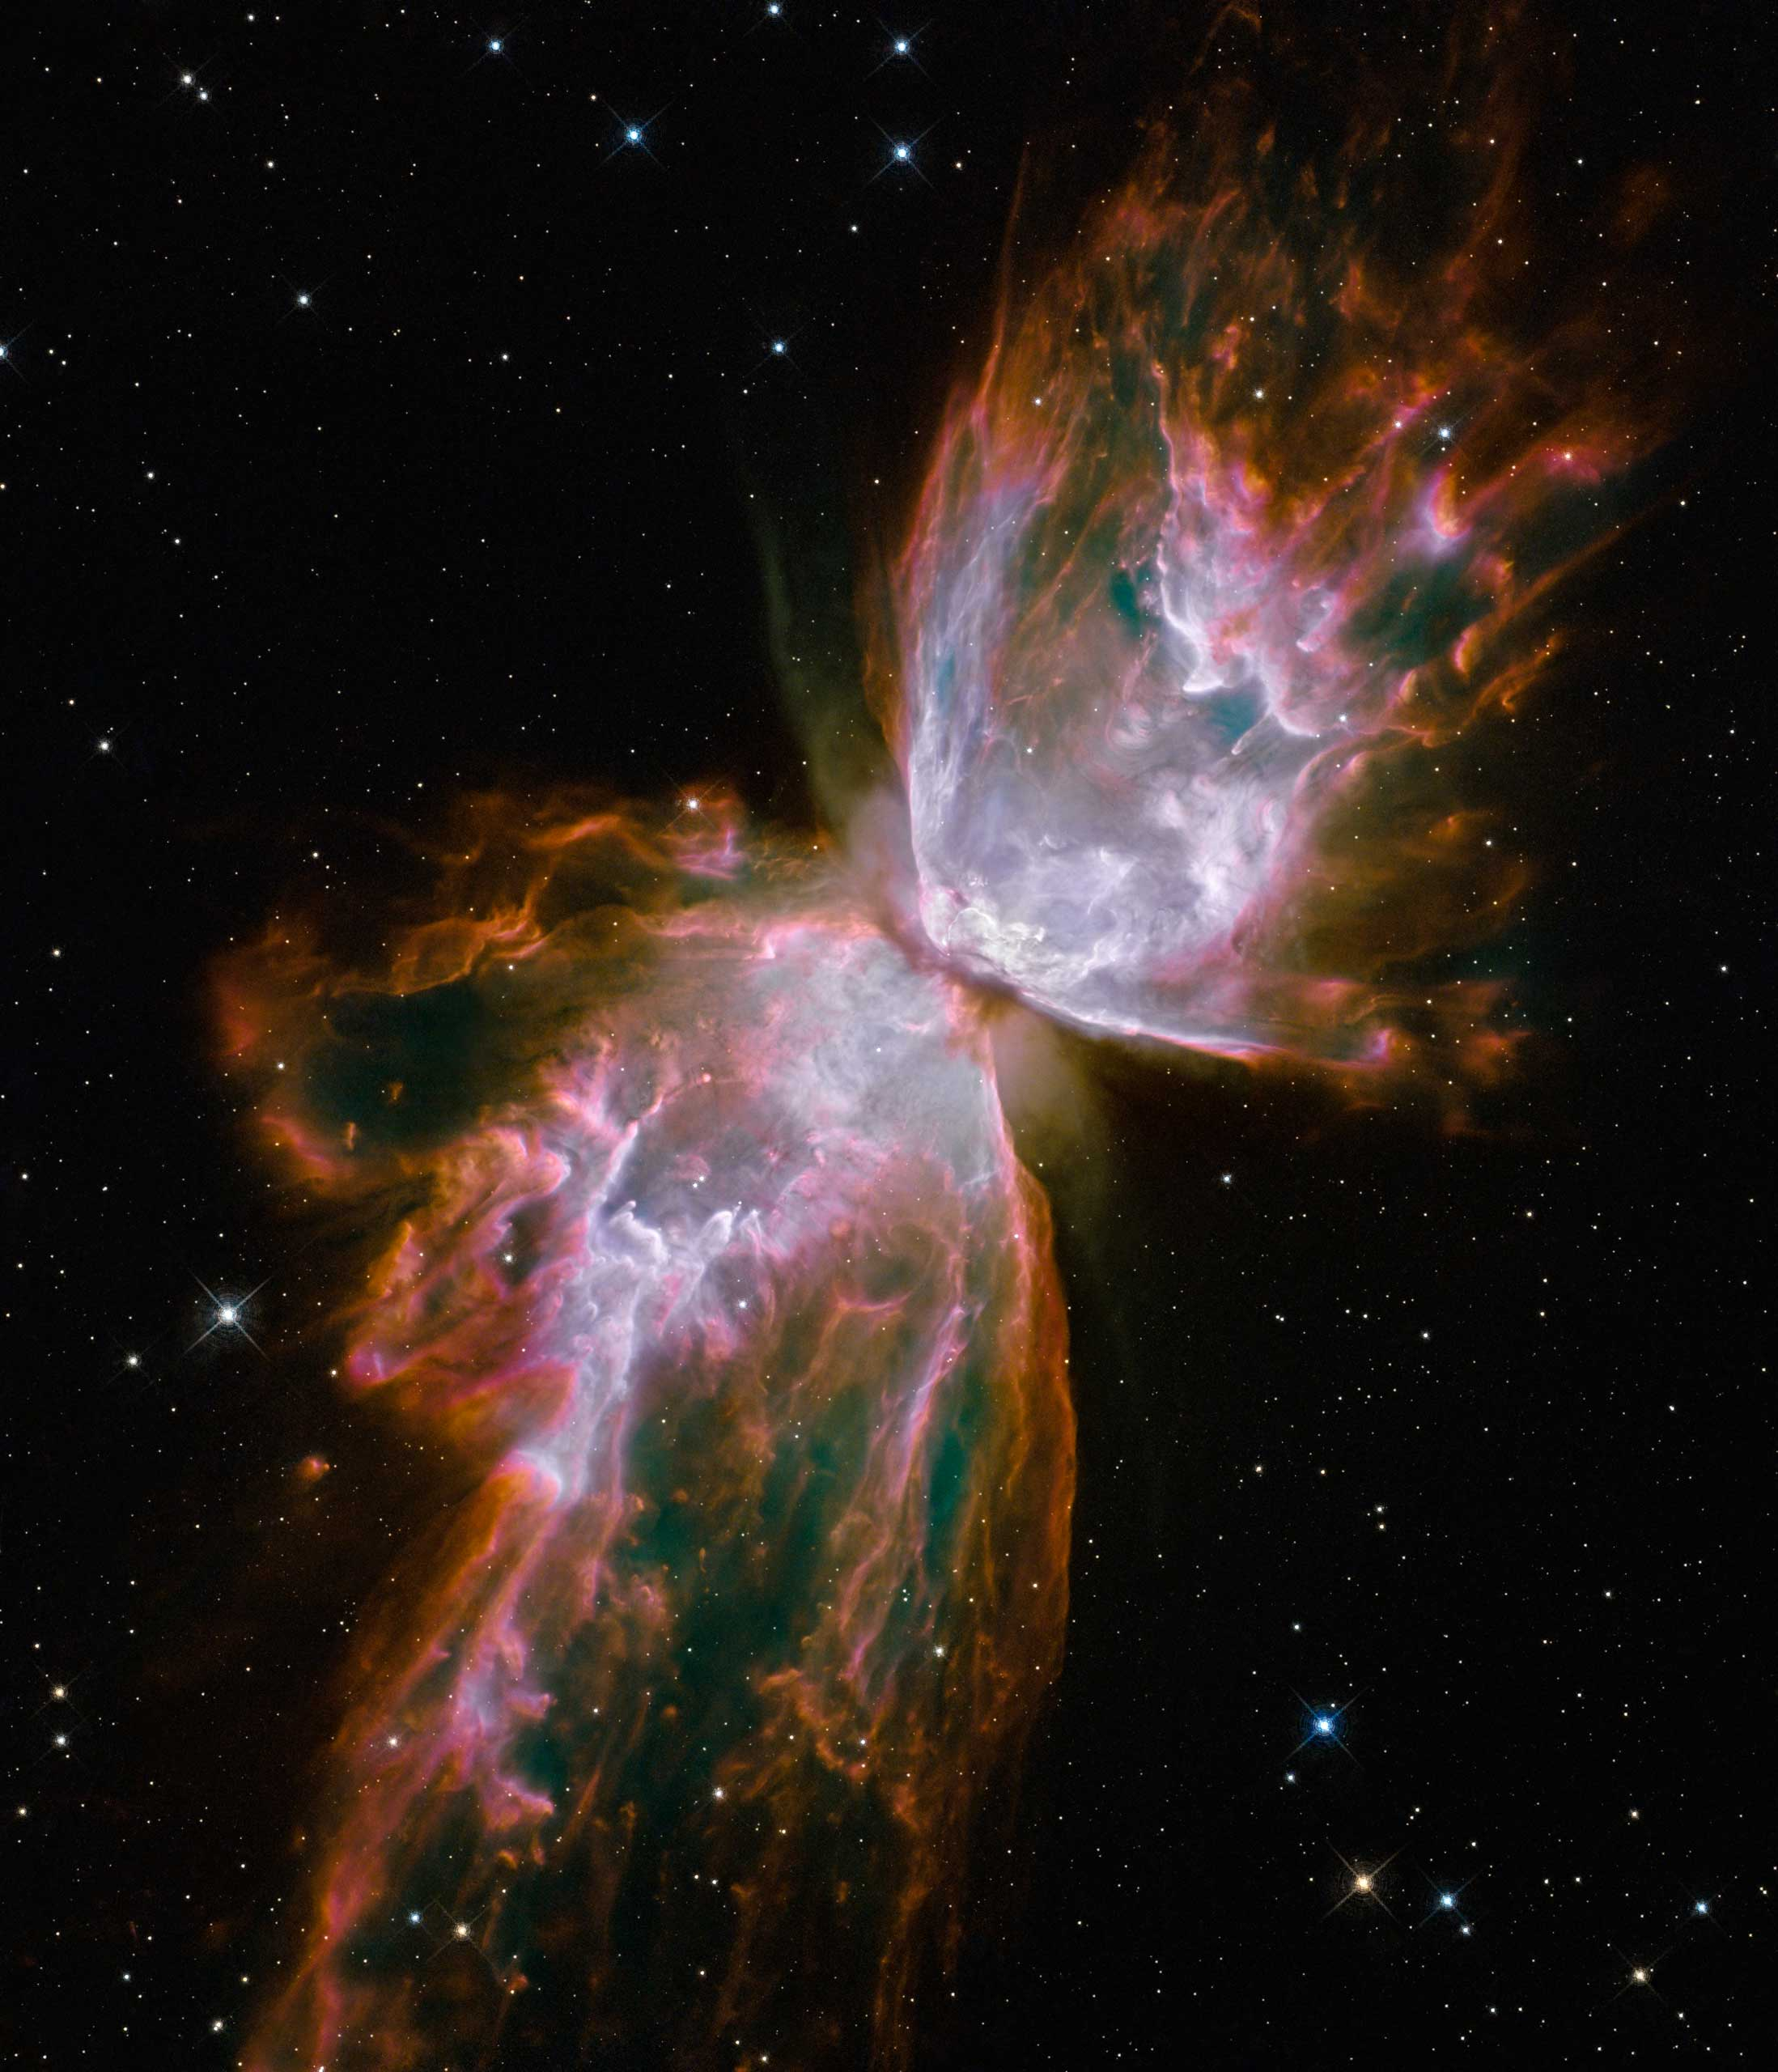 <strong>The Butterfly Nebula</strong>:                                                                      With a wingspan of over 3 light-years and an estimated surface temperature of about 250,000 degrees C, the dying central star of this planetary nebula has become exceptionally hot, shining brightly in ultraviolet light but hidden from direct view by a dense torus of dust. Also known as NGC 6302, the nebula lies about 4,000 light-years away in the constellation of the Scorpion (Scorpius).                                                                      <i>Image released on Sept. 9, 2009</i>